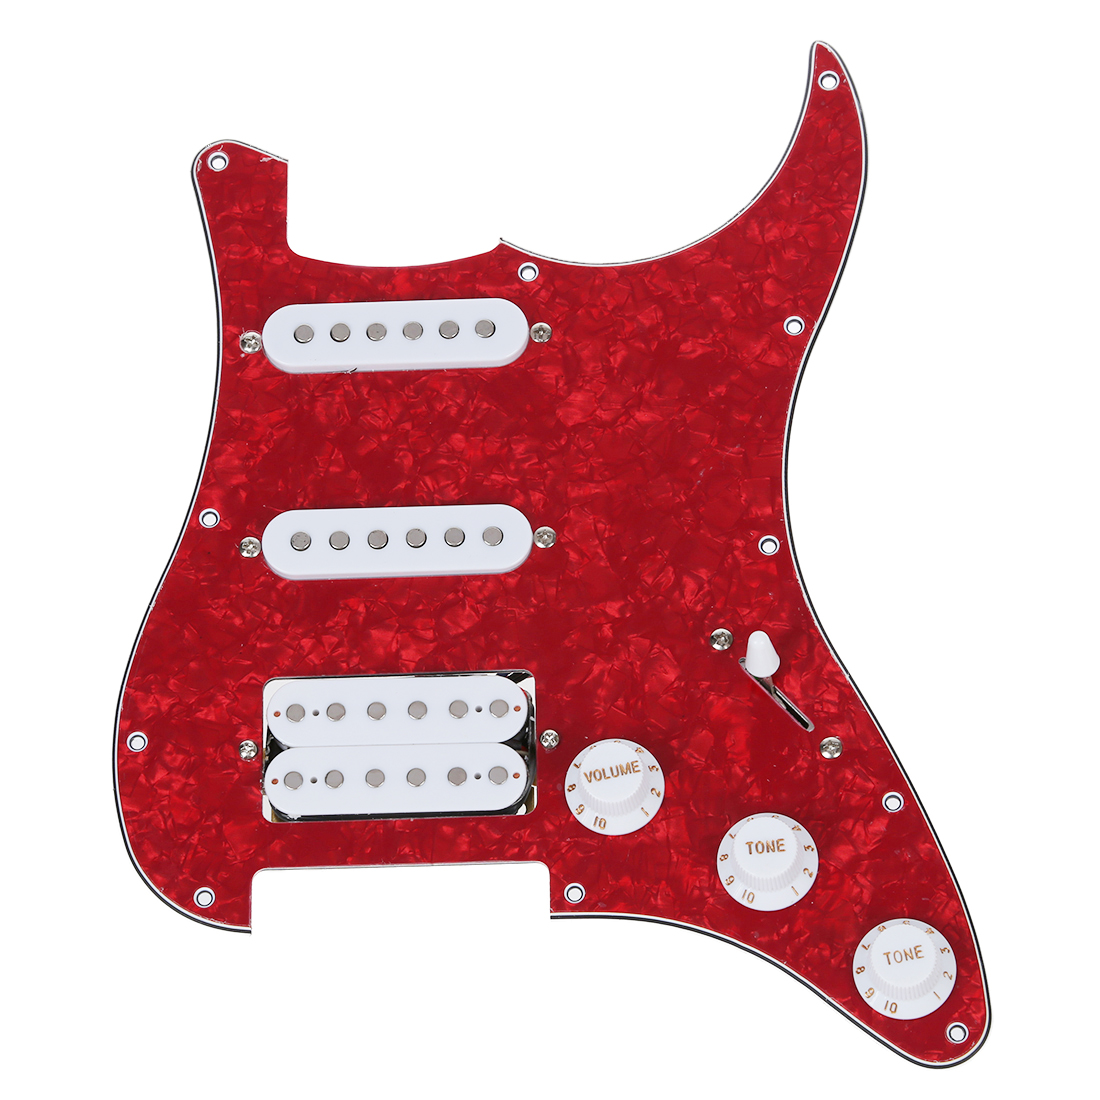 HOT Wholesale 5X Loaded Prewired Pickguard for Electric Guitar---Red wholesale 5x loaded prewired pickguard for electric guitar red